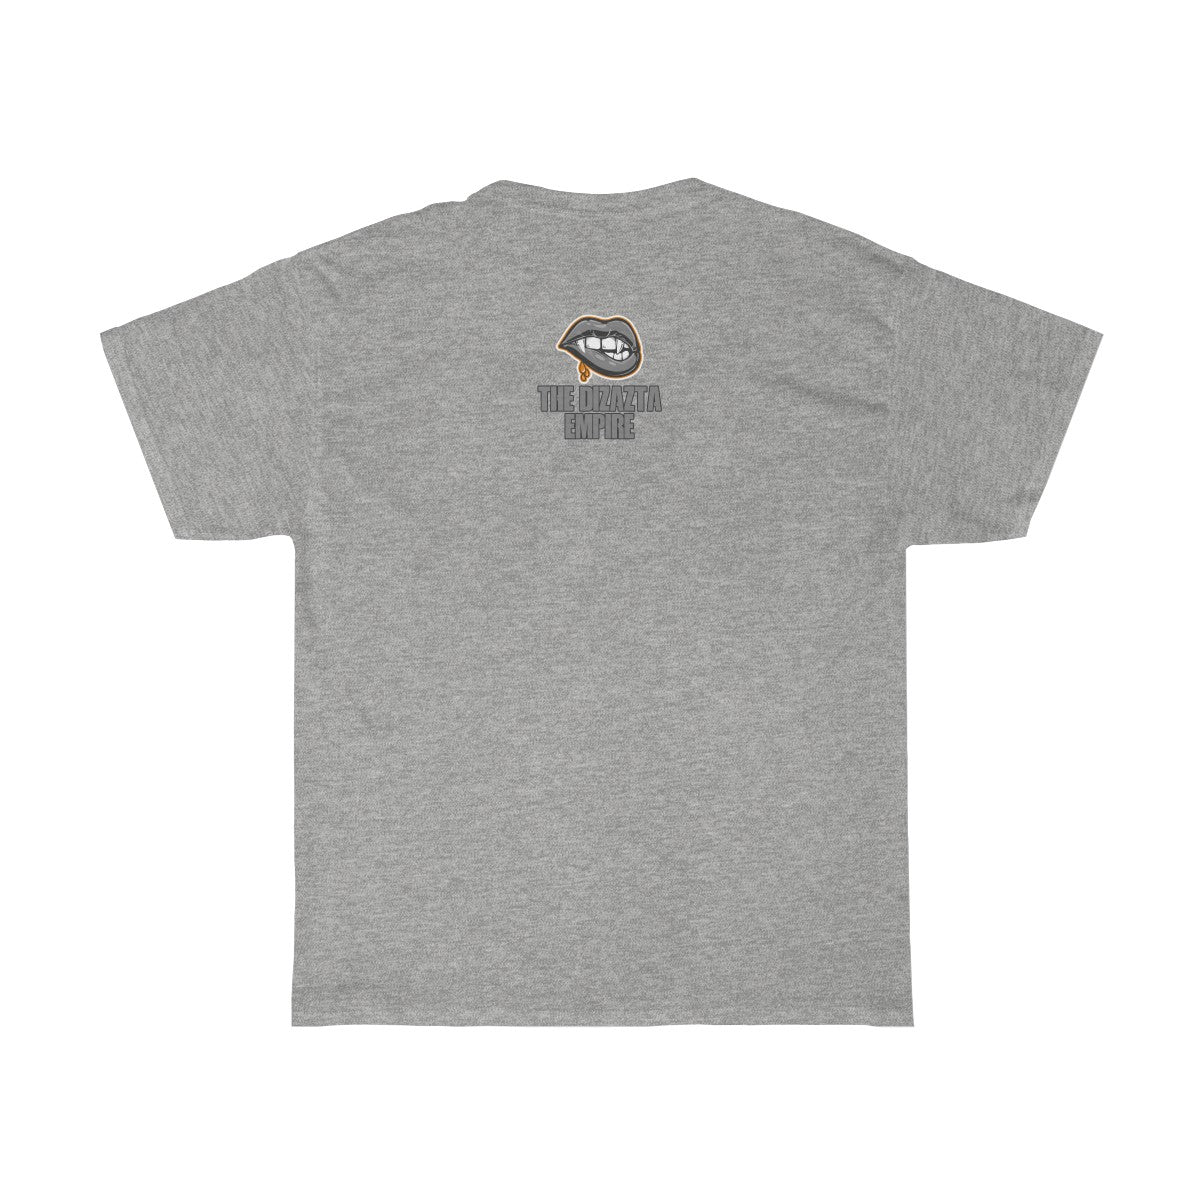 TDE 0420 Unisex Heavy Cotton Tee